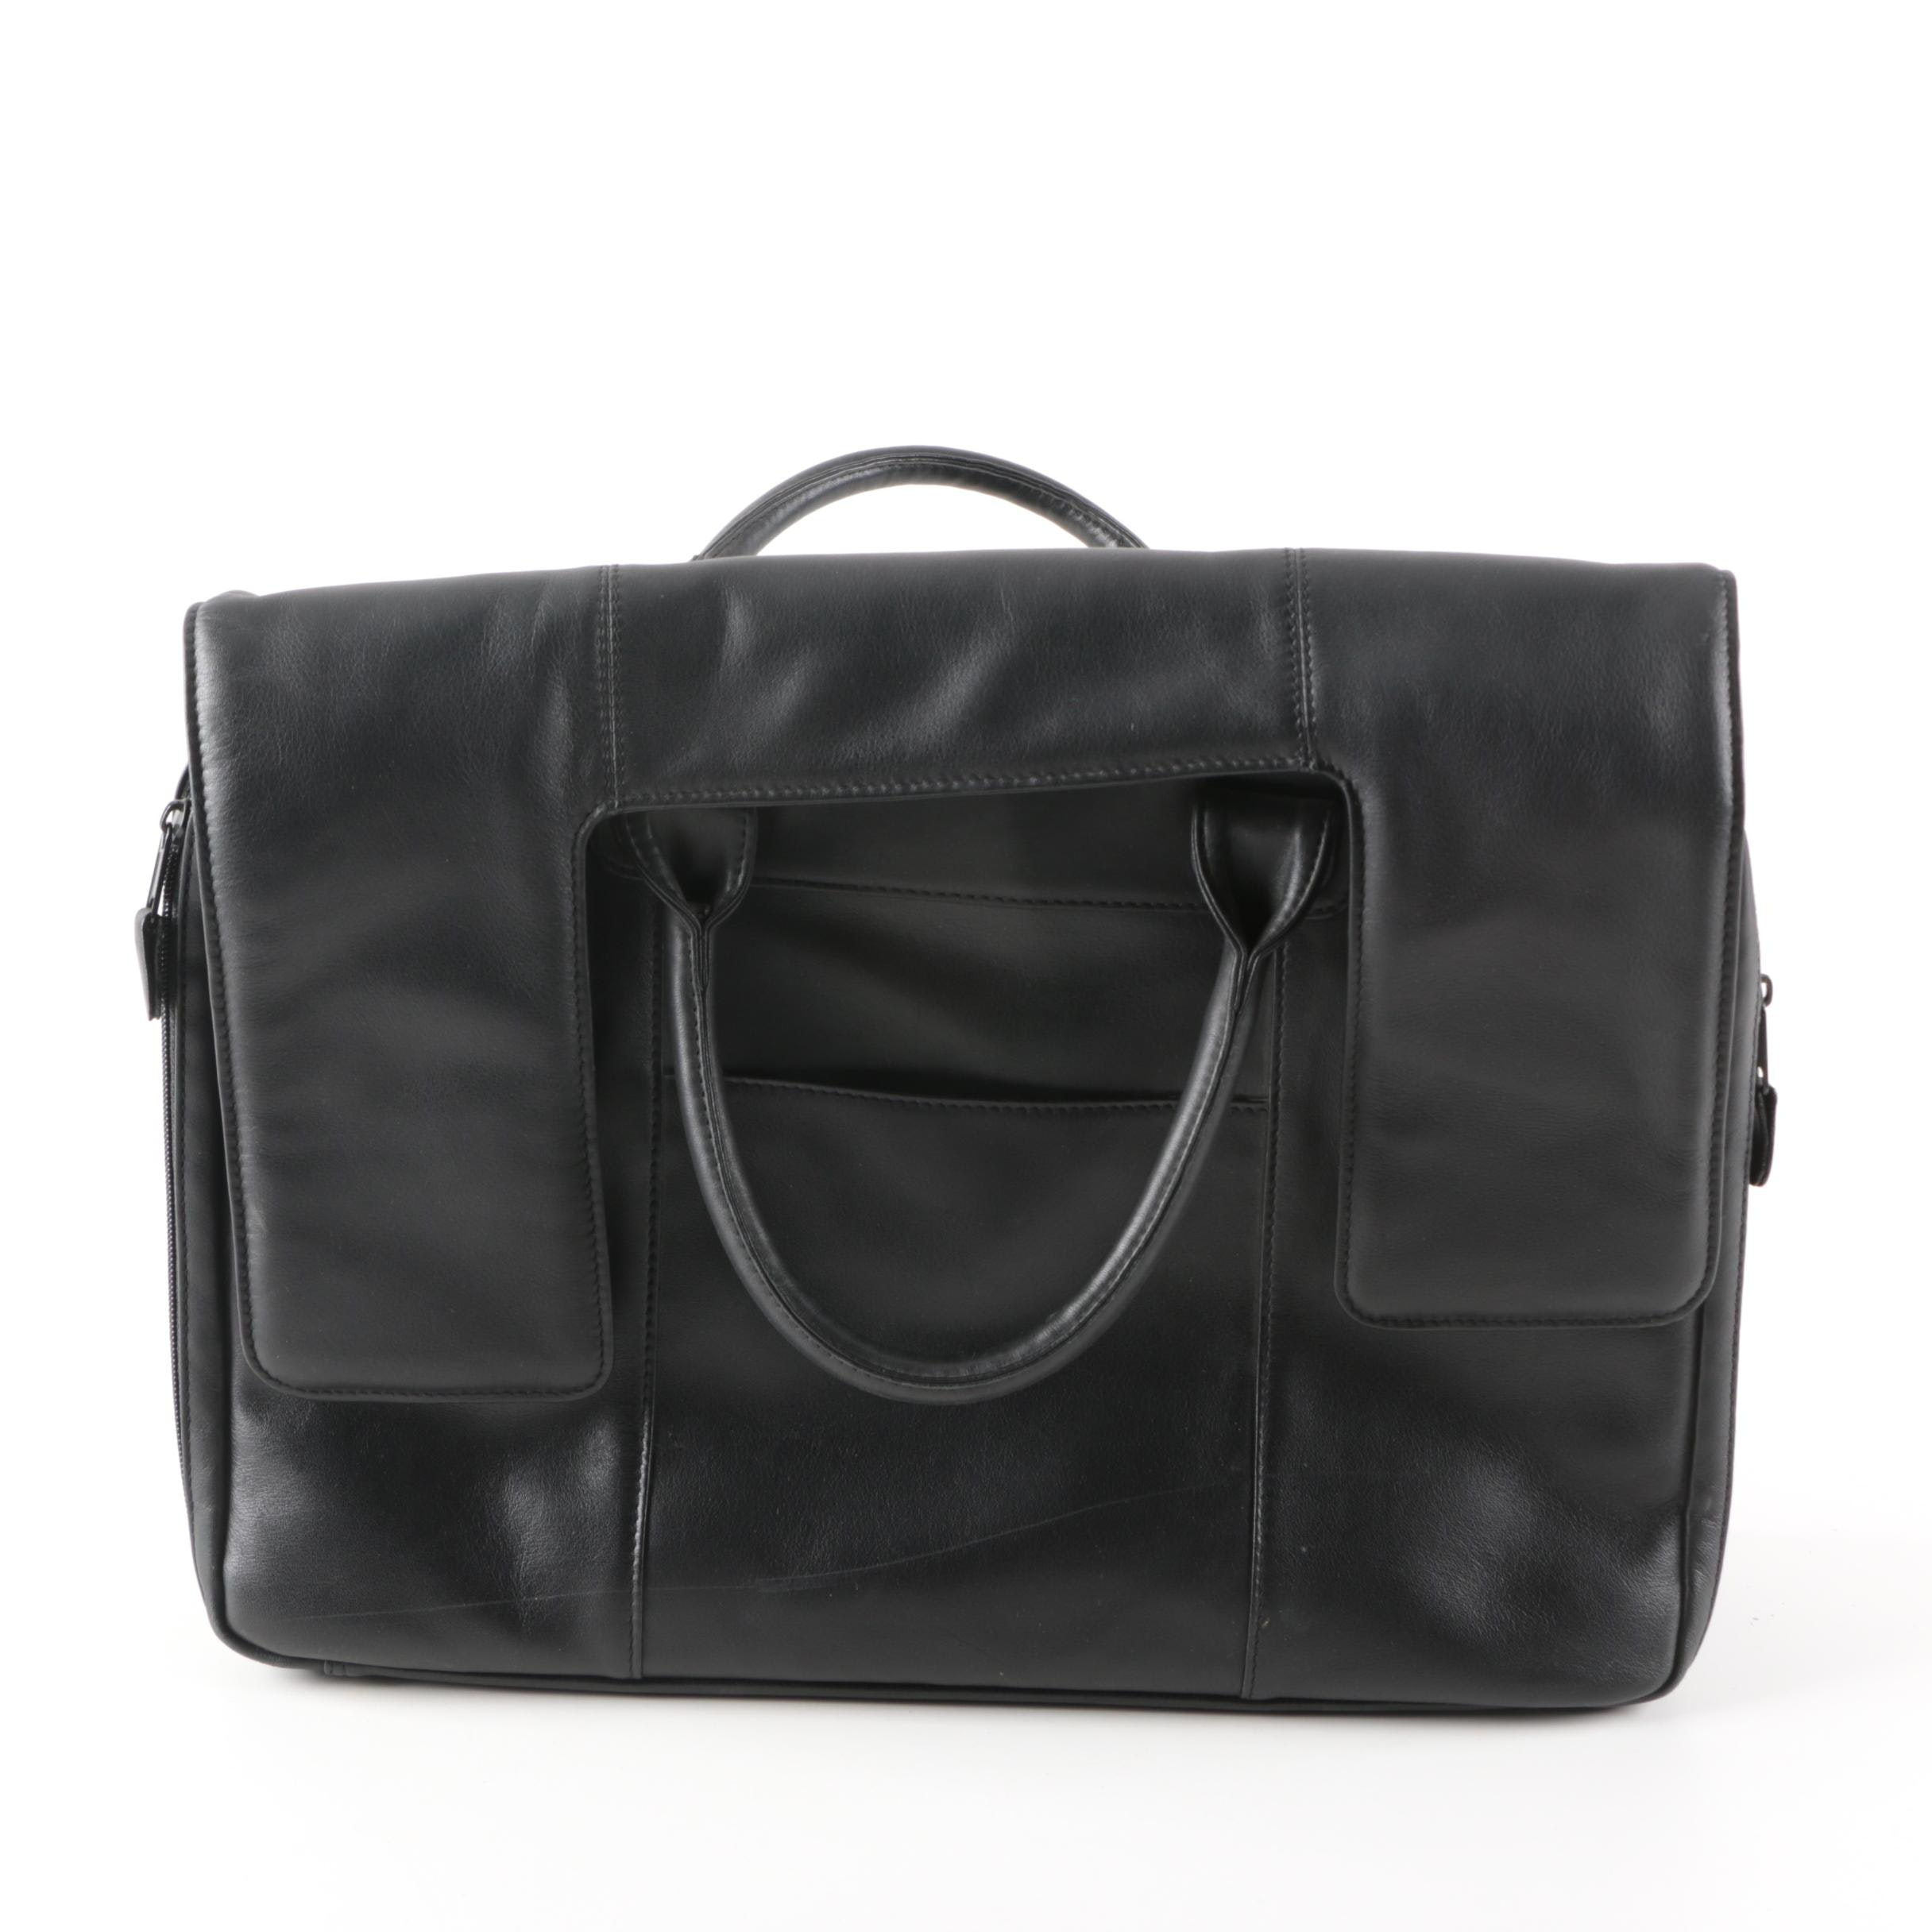 Black Leather Briefcase With Accordion File Pockets